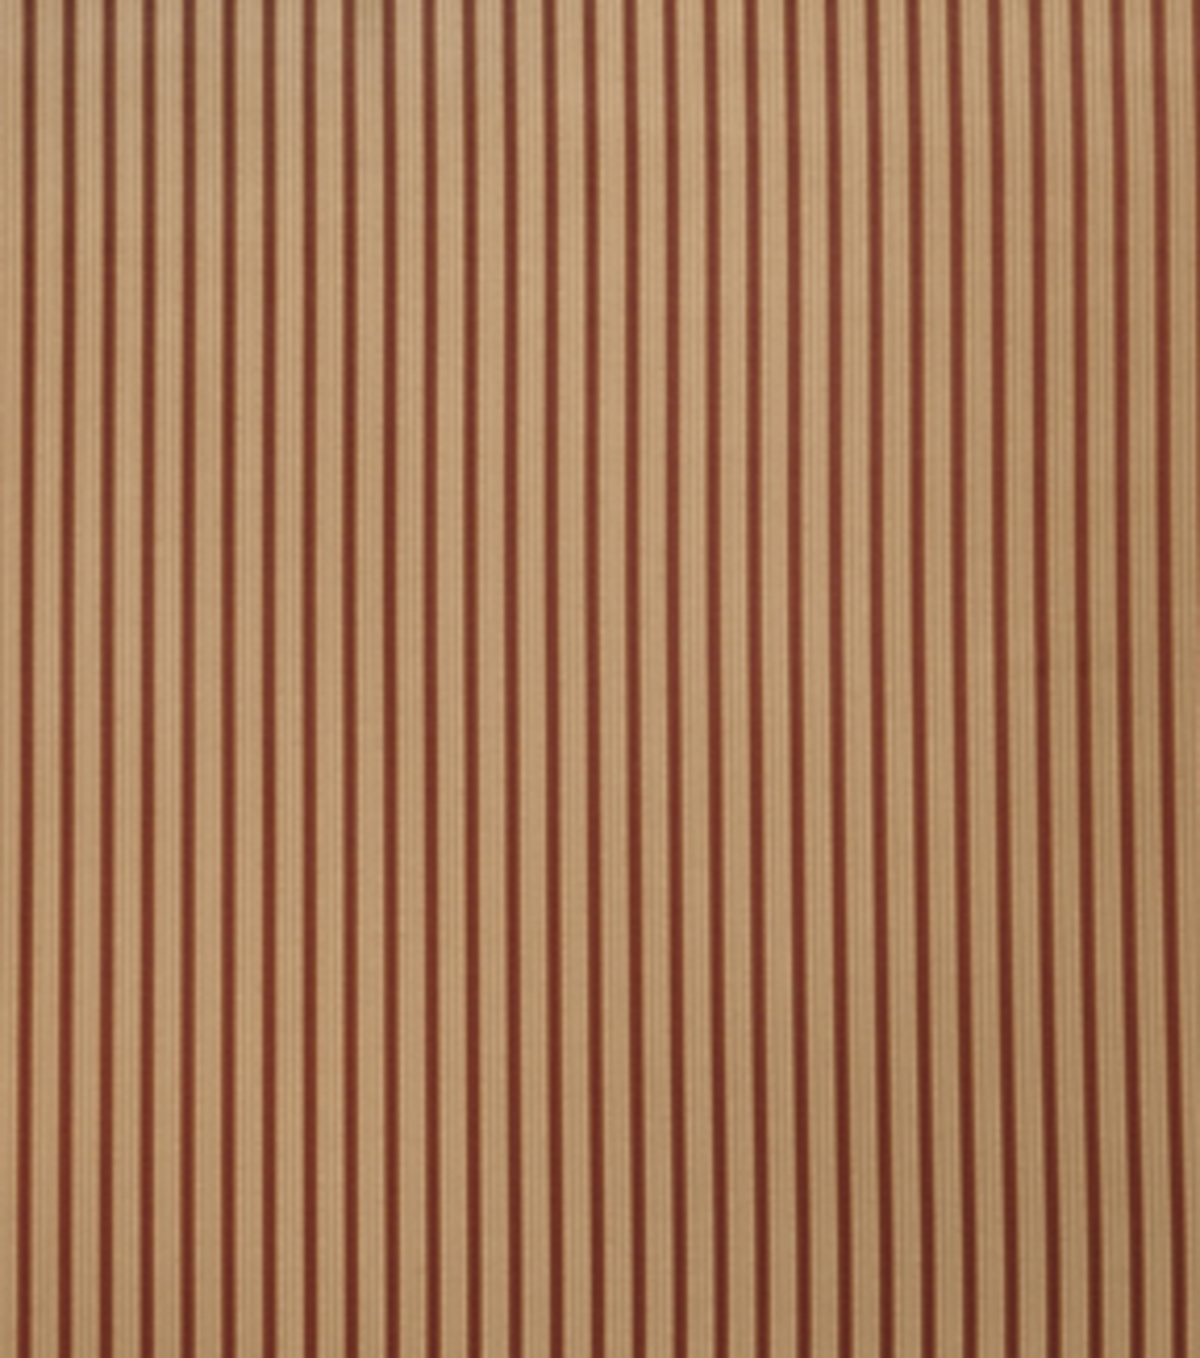 Home Decor 8\u0022x8\u0022 Fabric Swatch-Upholstery Fabric Eaton Square Trees Russet